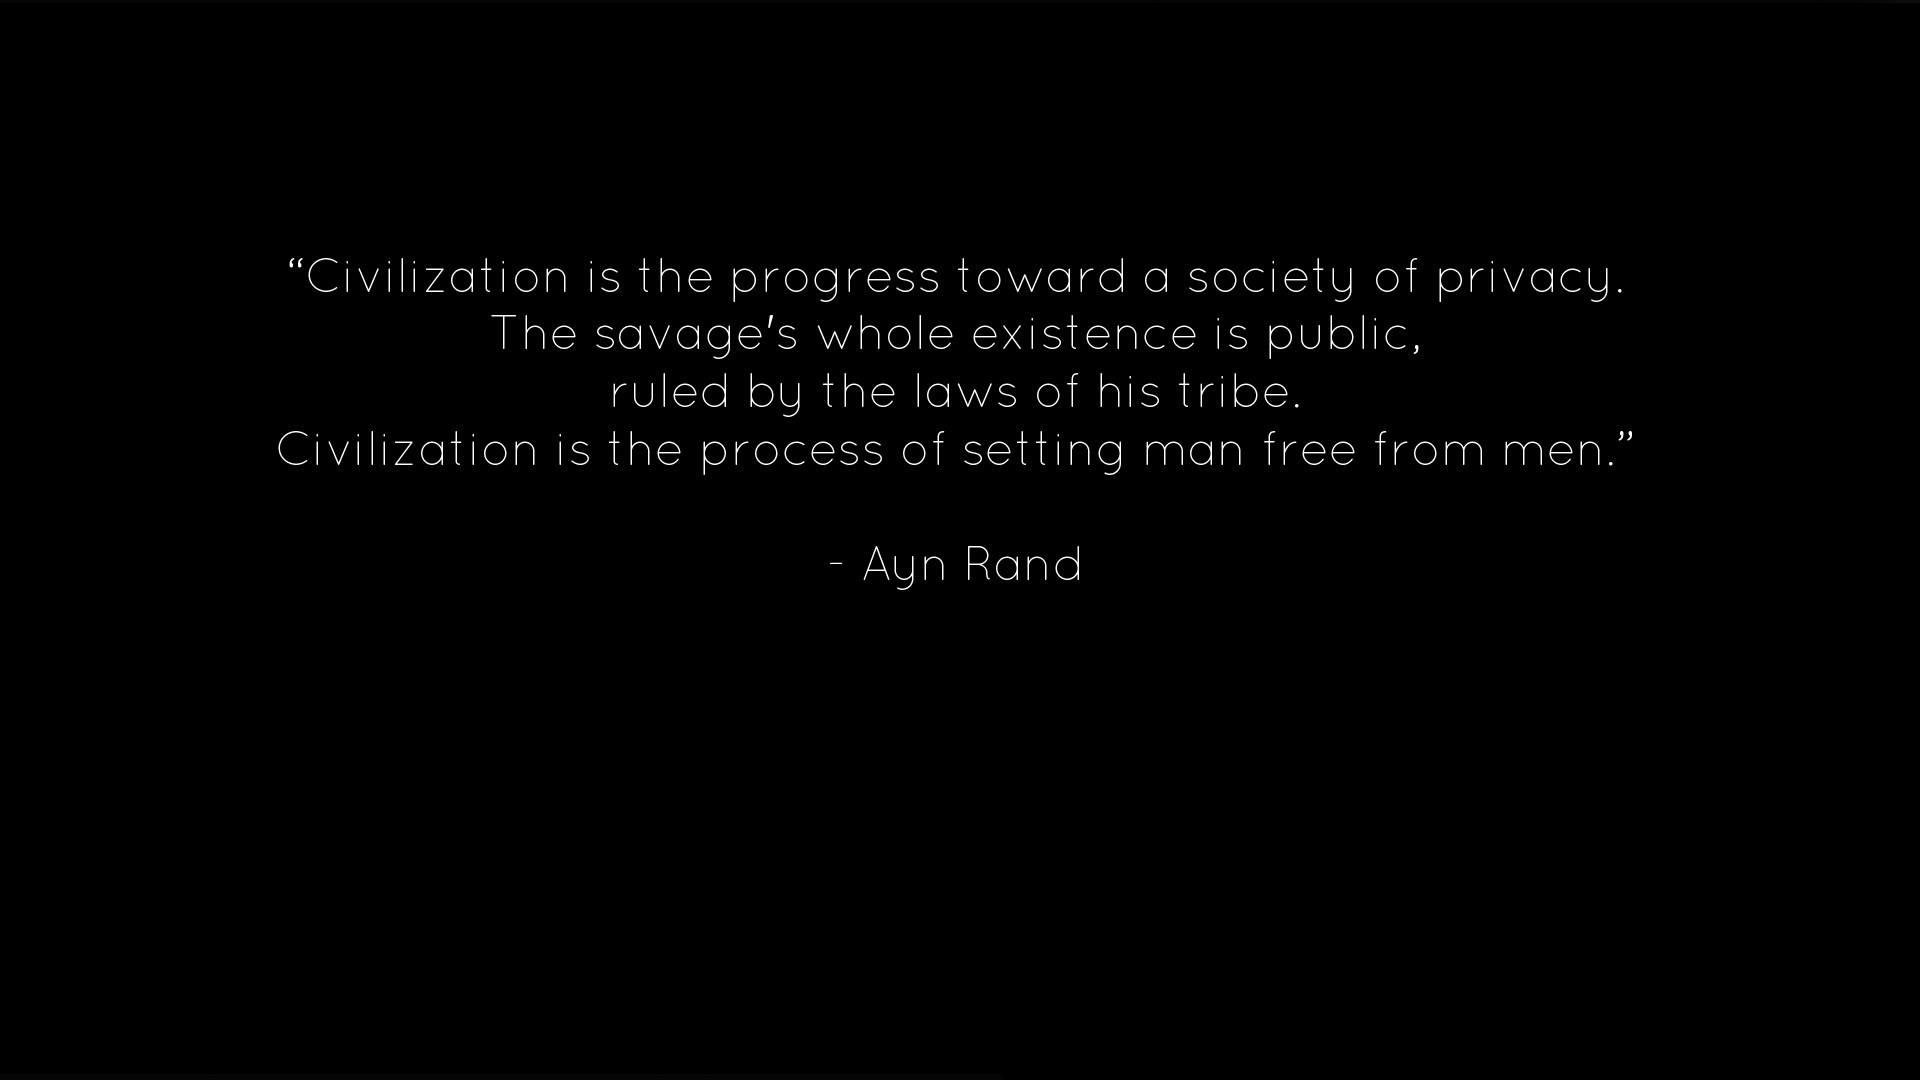 quotes by ayn rand | Text Quotes Ayn Rand Black Background Fresh New HD  Wallpaper Best